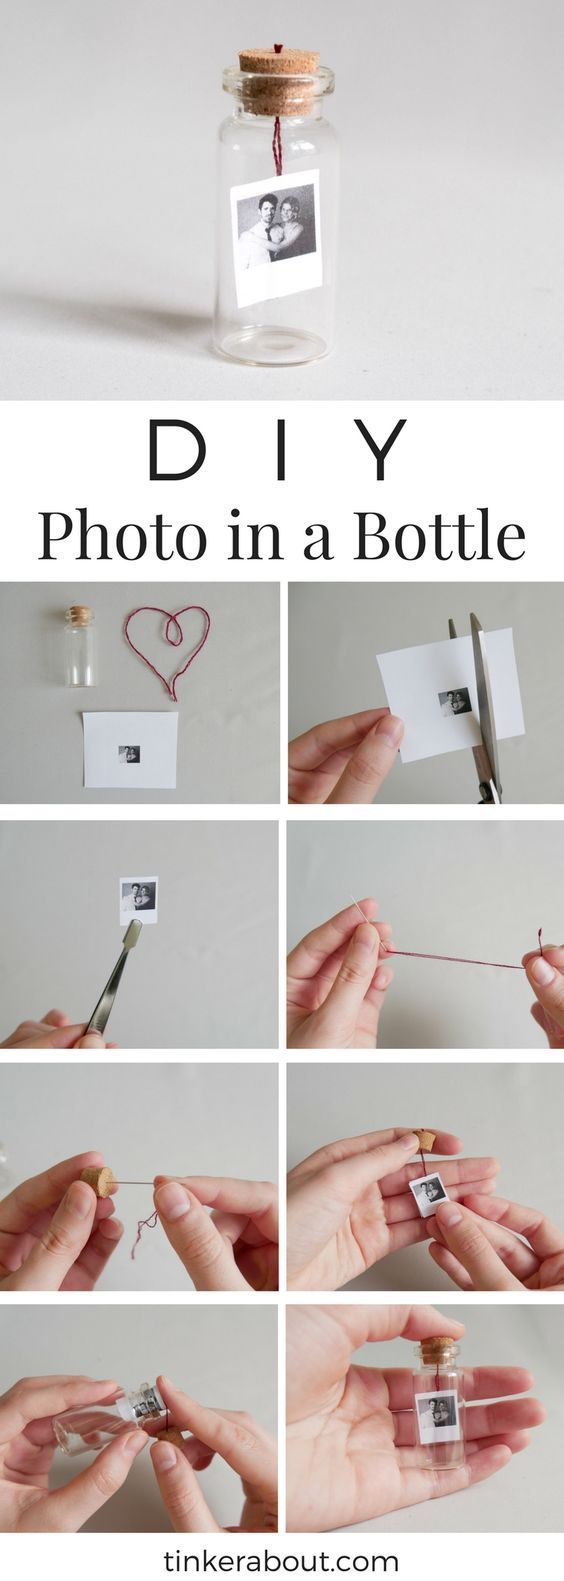 DIY Tiny Photo/Message in a Bottle as an Anniversary Gift Idea - #Anniversary #Bottle #Diy #gift #idea #PhotoMessage #Tiny